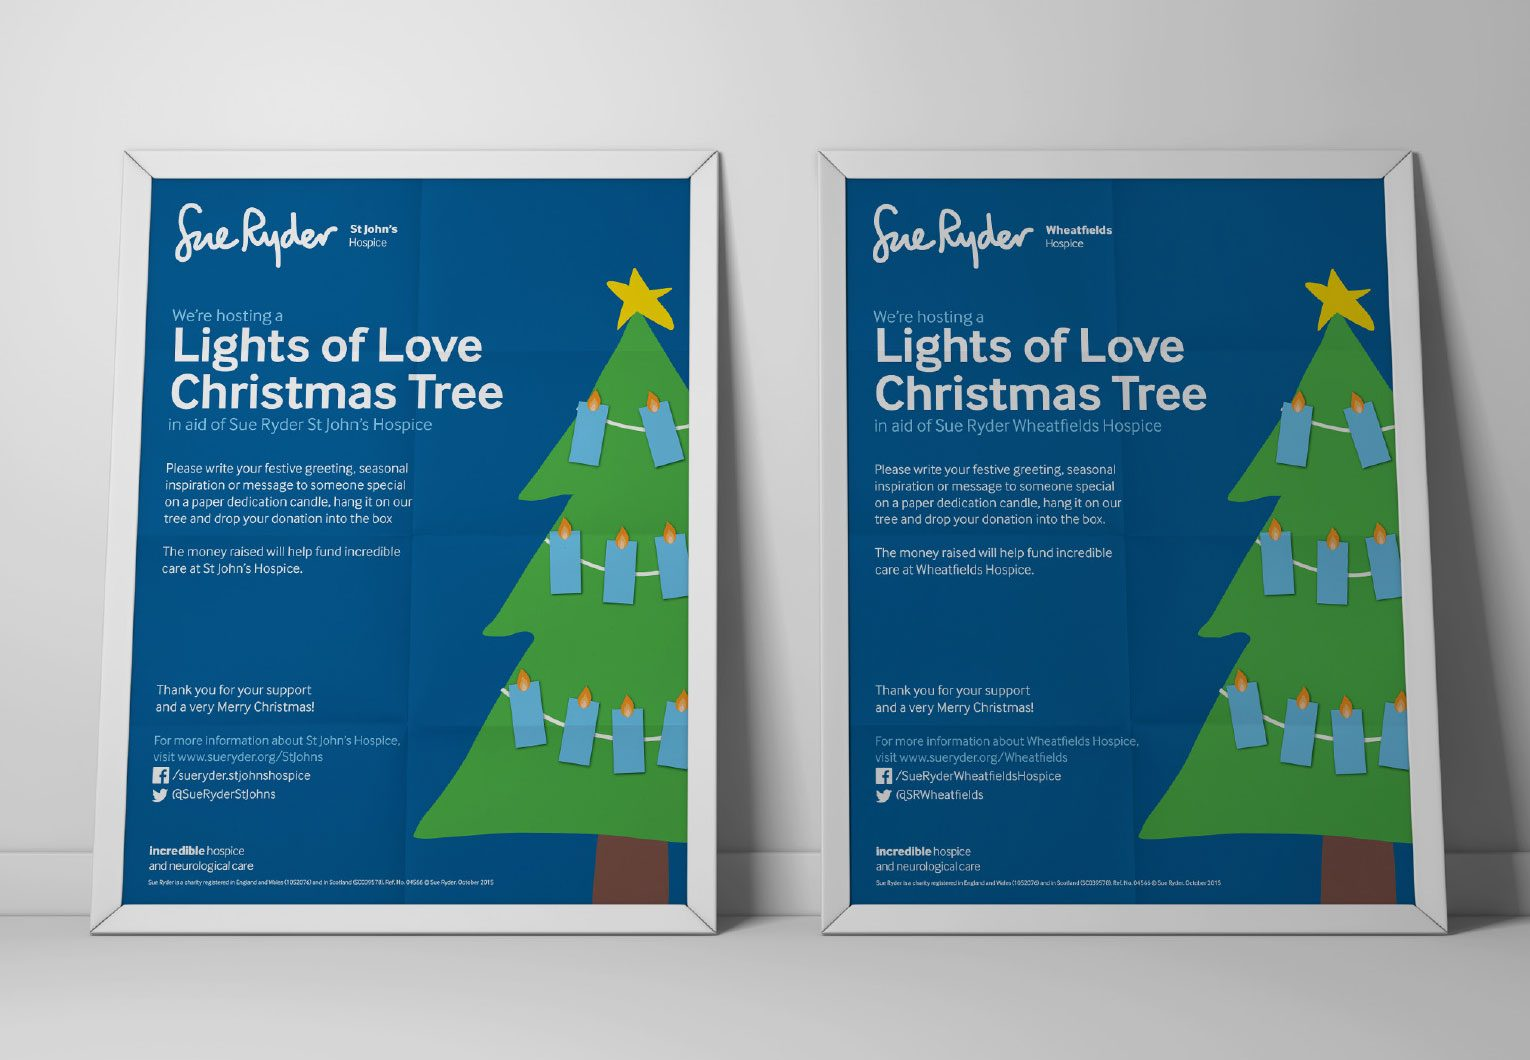 Christmas tree flyers promoting the Lights of love service at the Wheatfields Hospice.